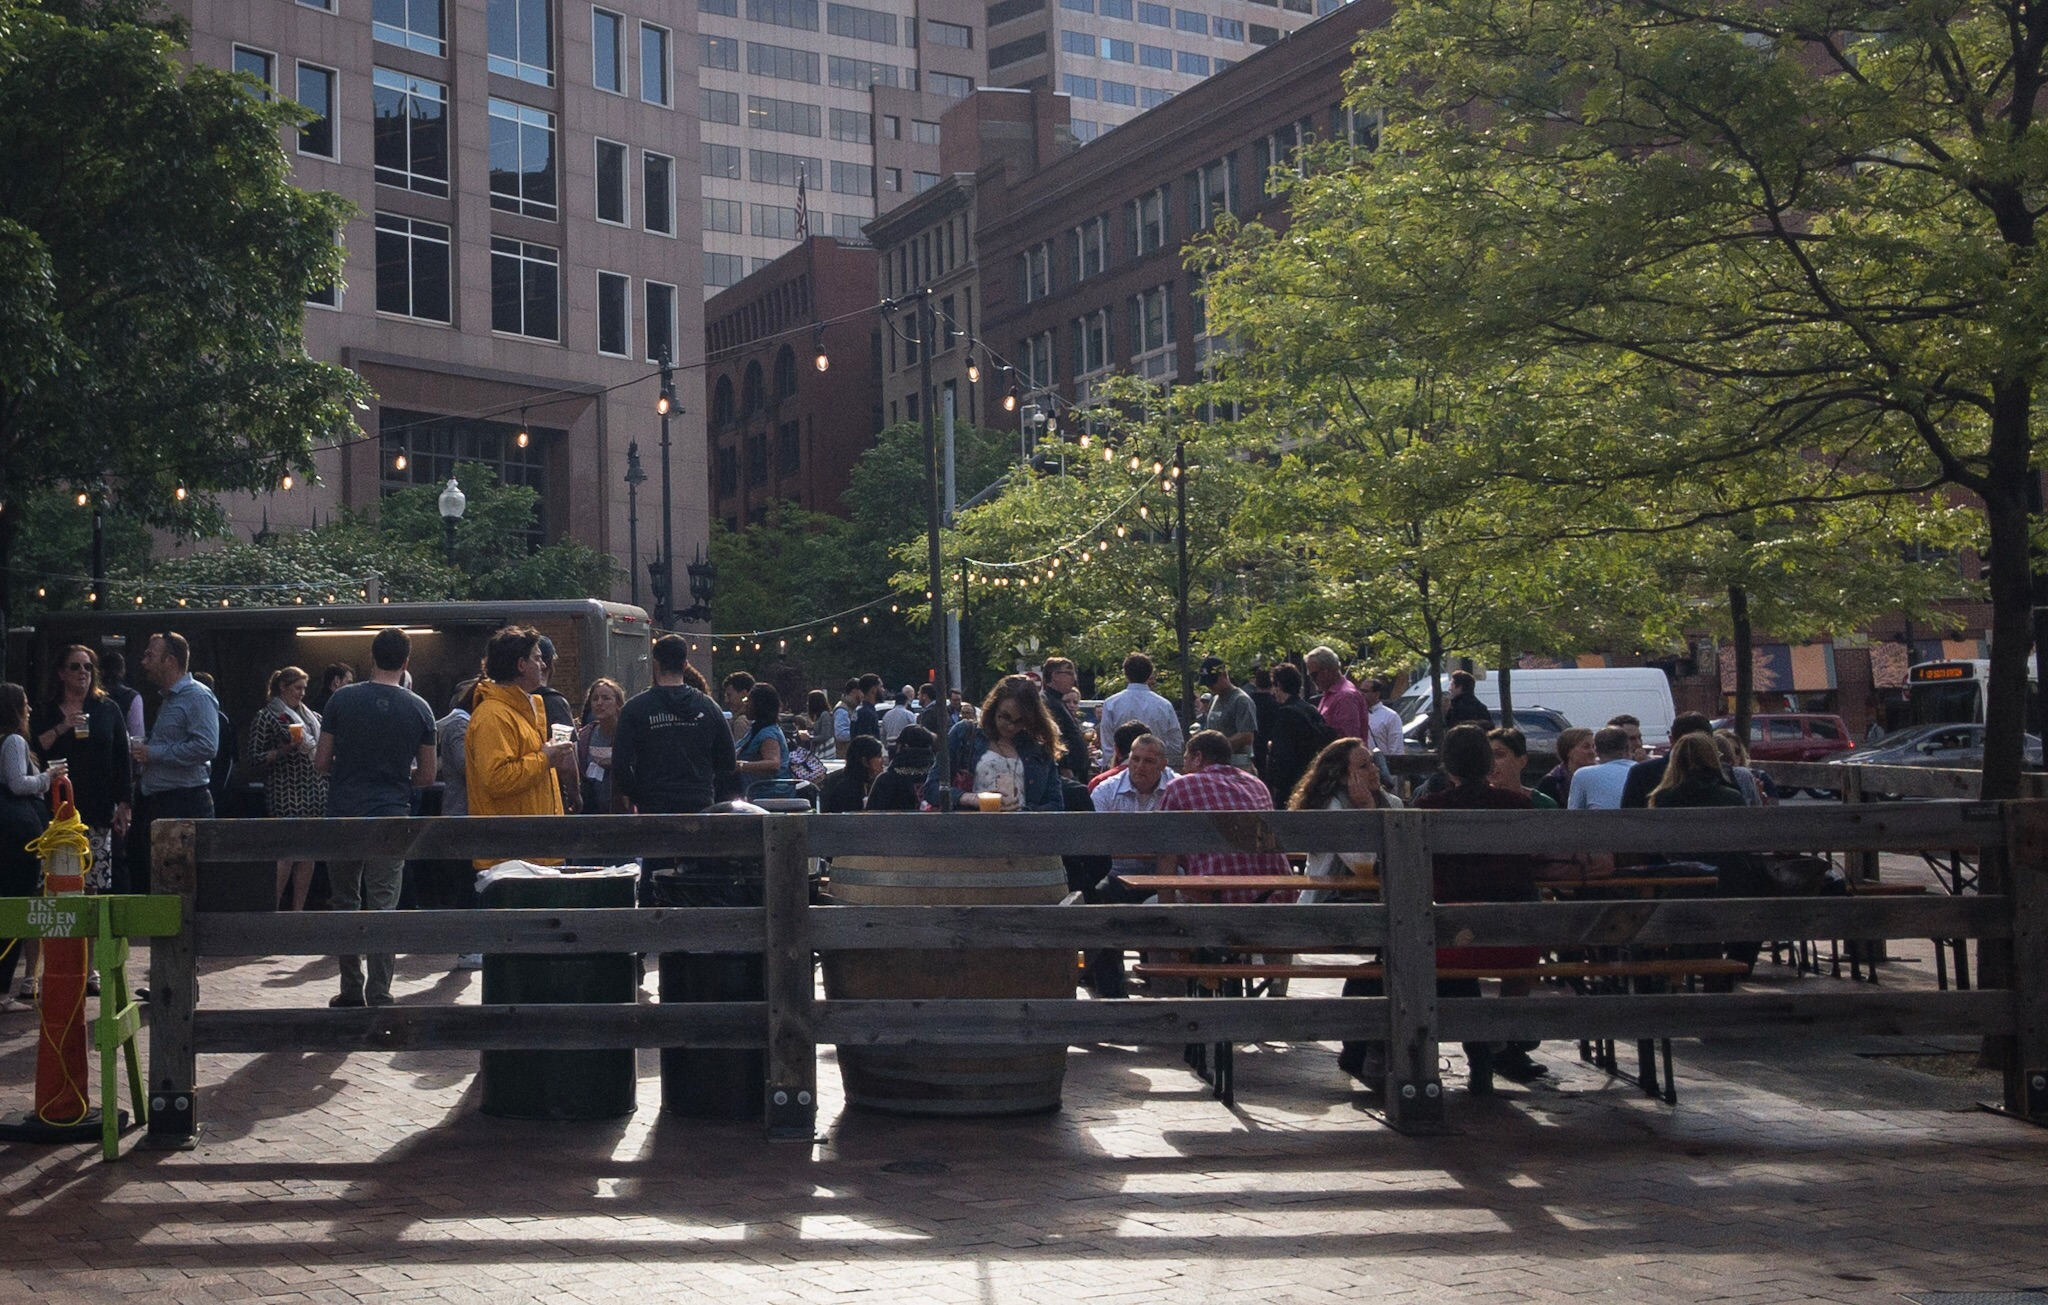 Trillium Beer Garden Opens On Greenway Across From Rowes Wharf